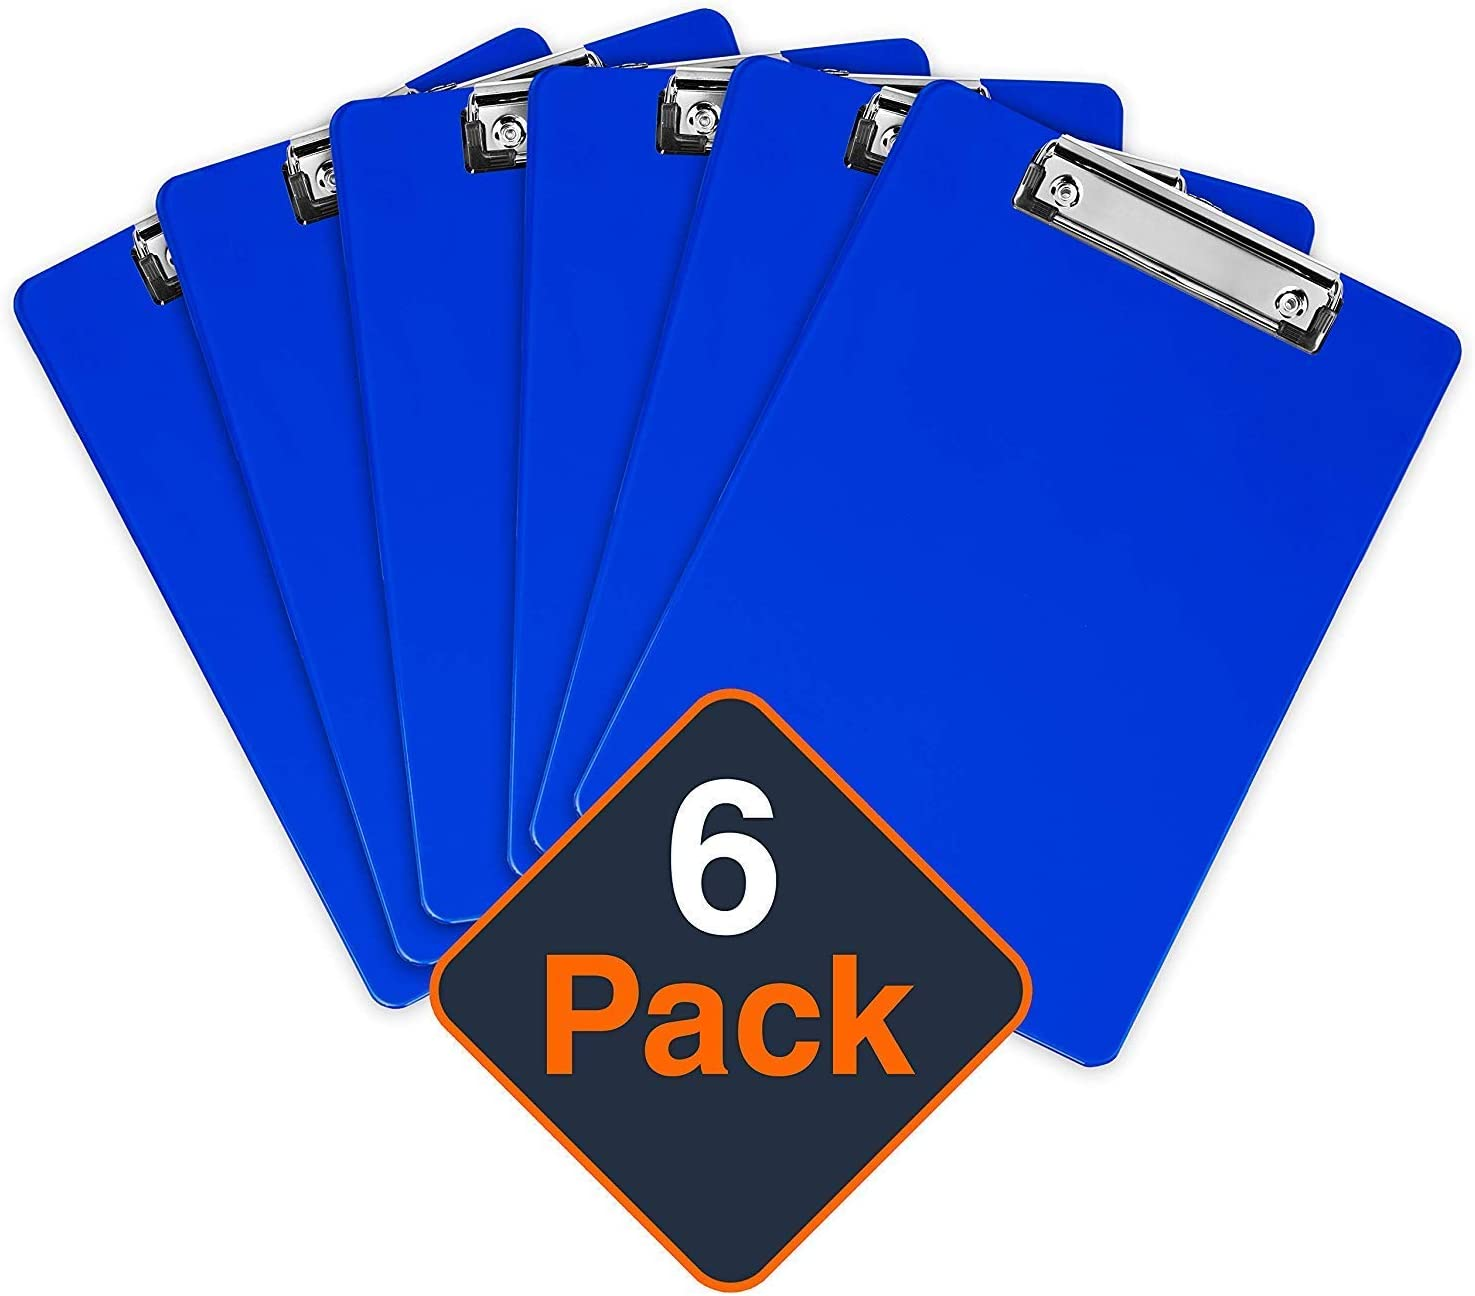 Plastic Clipboards (Set of 6) Multi Pack Clipboard (Blue) Strong 12.5 x 9 Inch | Holds 100 Sheets! Acrylic Clipboards with Low Profile Clip | Cute Clip Boards Board Clips